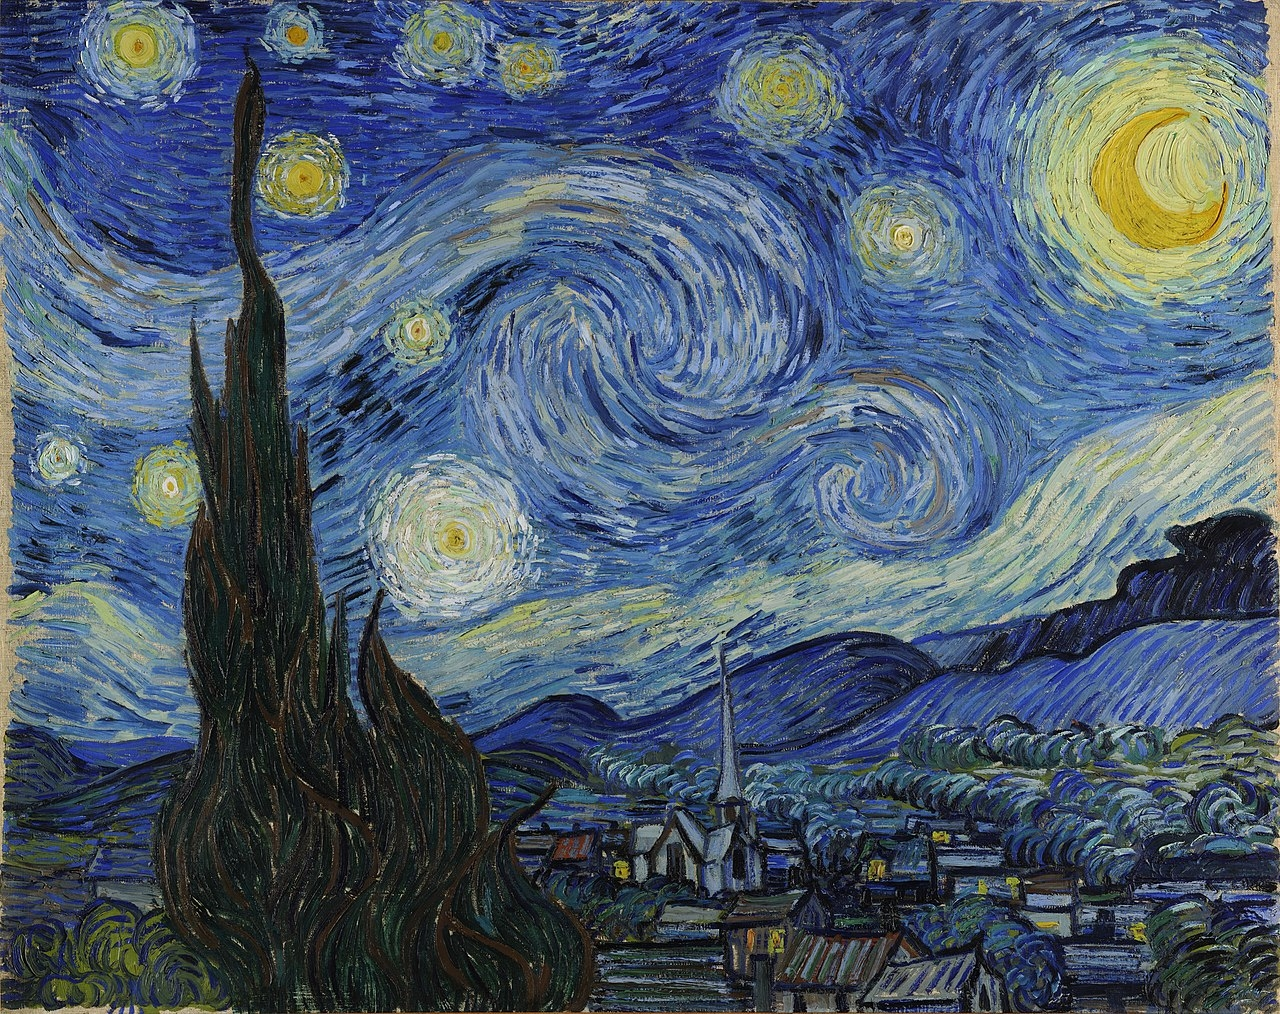 Vincent van Gogh , 'The Starry Night',1889, Oil on canvas, 73.7 × 92.1 cm, Museum of Modern Art, New York City